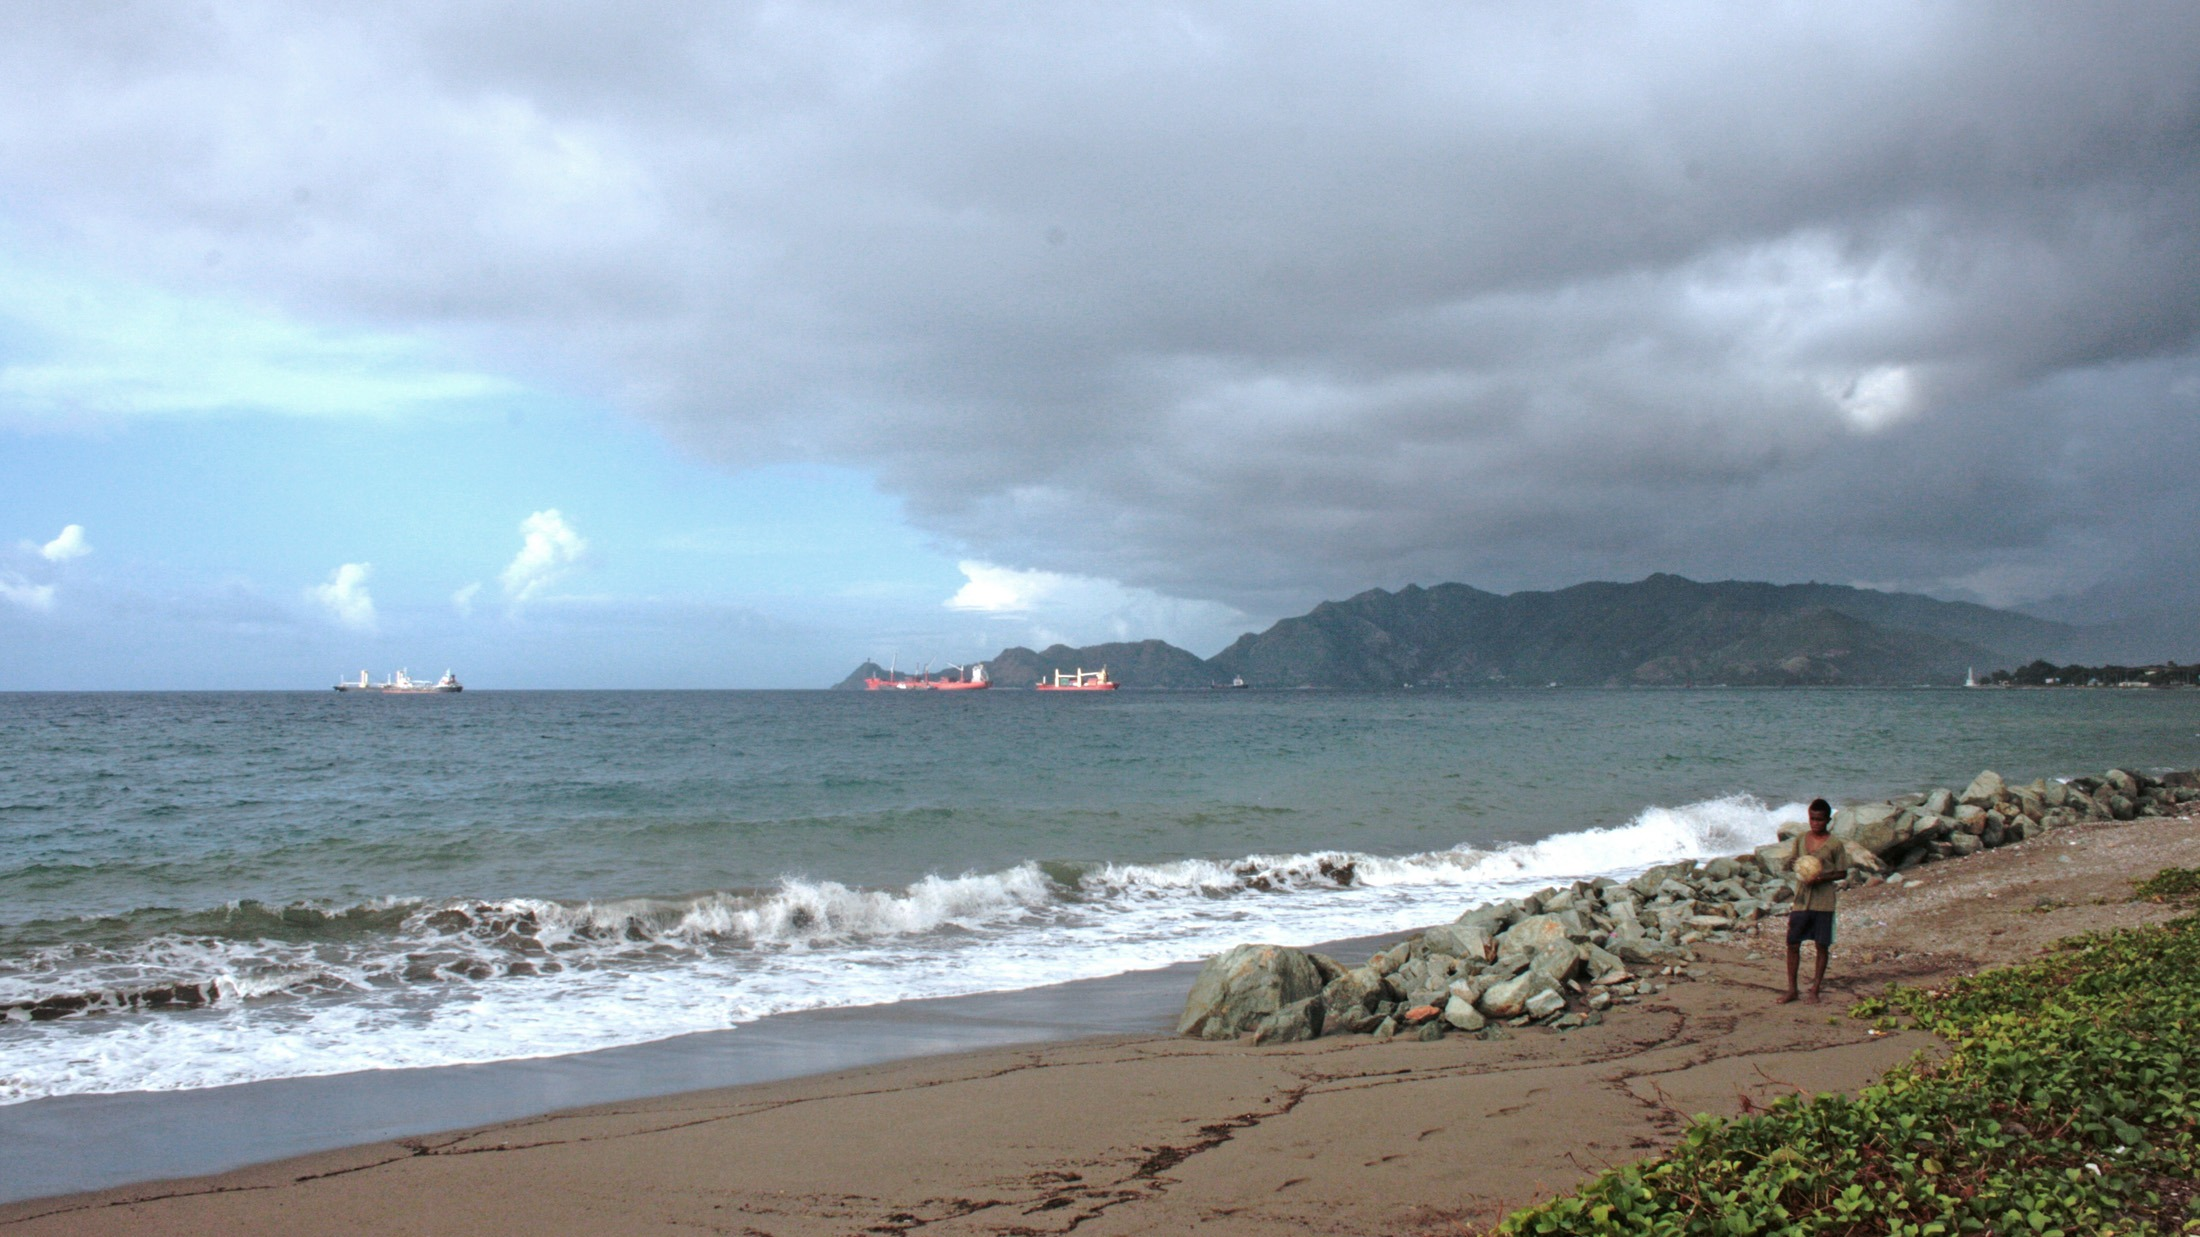 The harbour in Dili, Timor-Leste sees a steady stream of tanker ships bringing much-needed imports to the half-island impoverished nation.